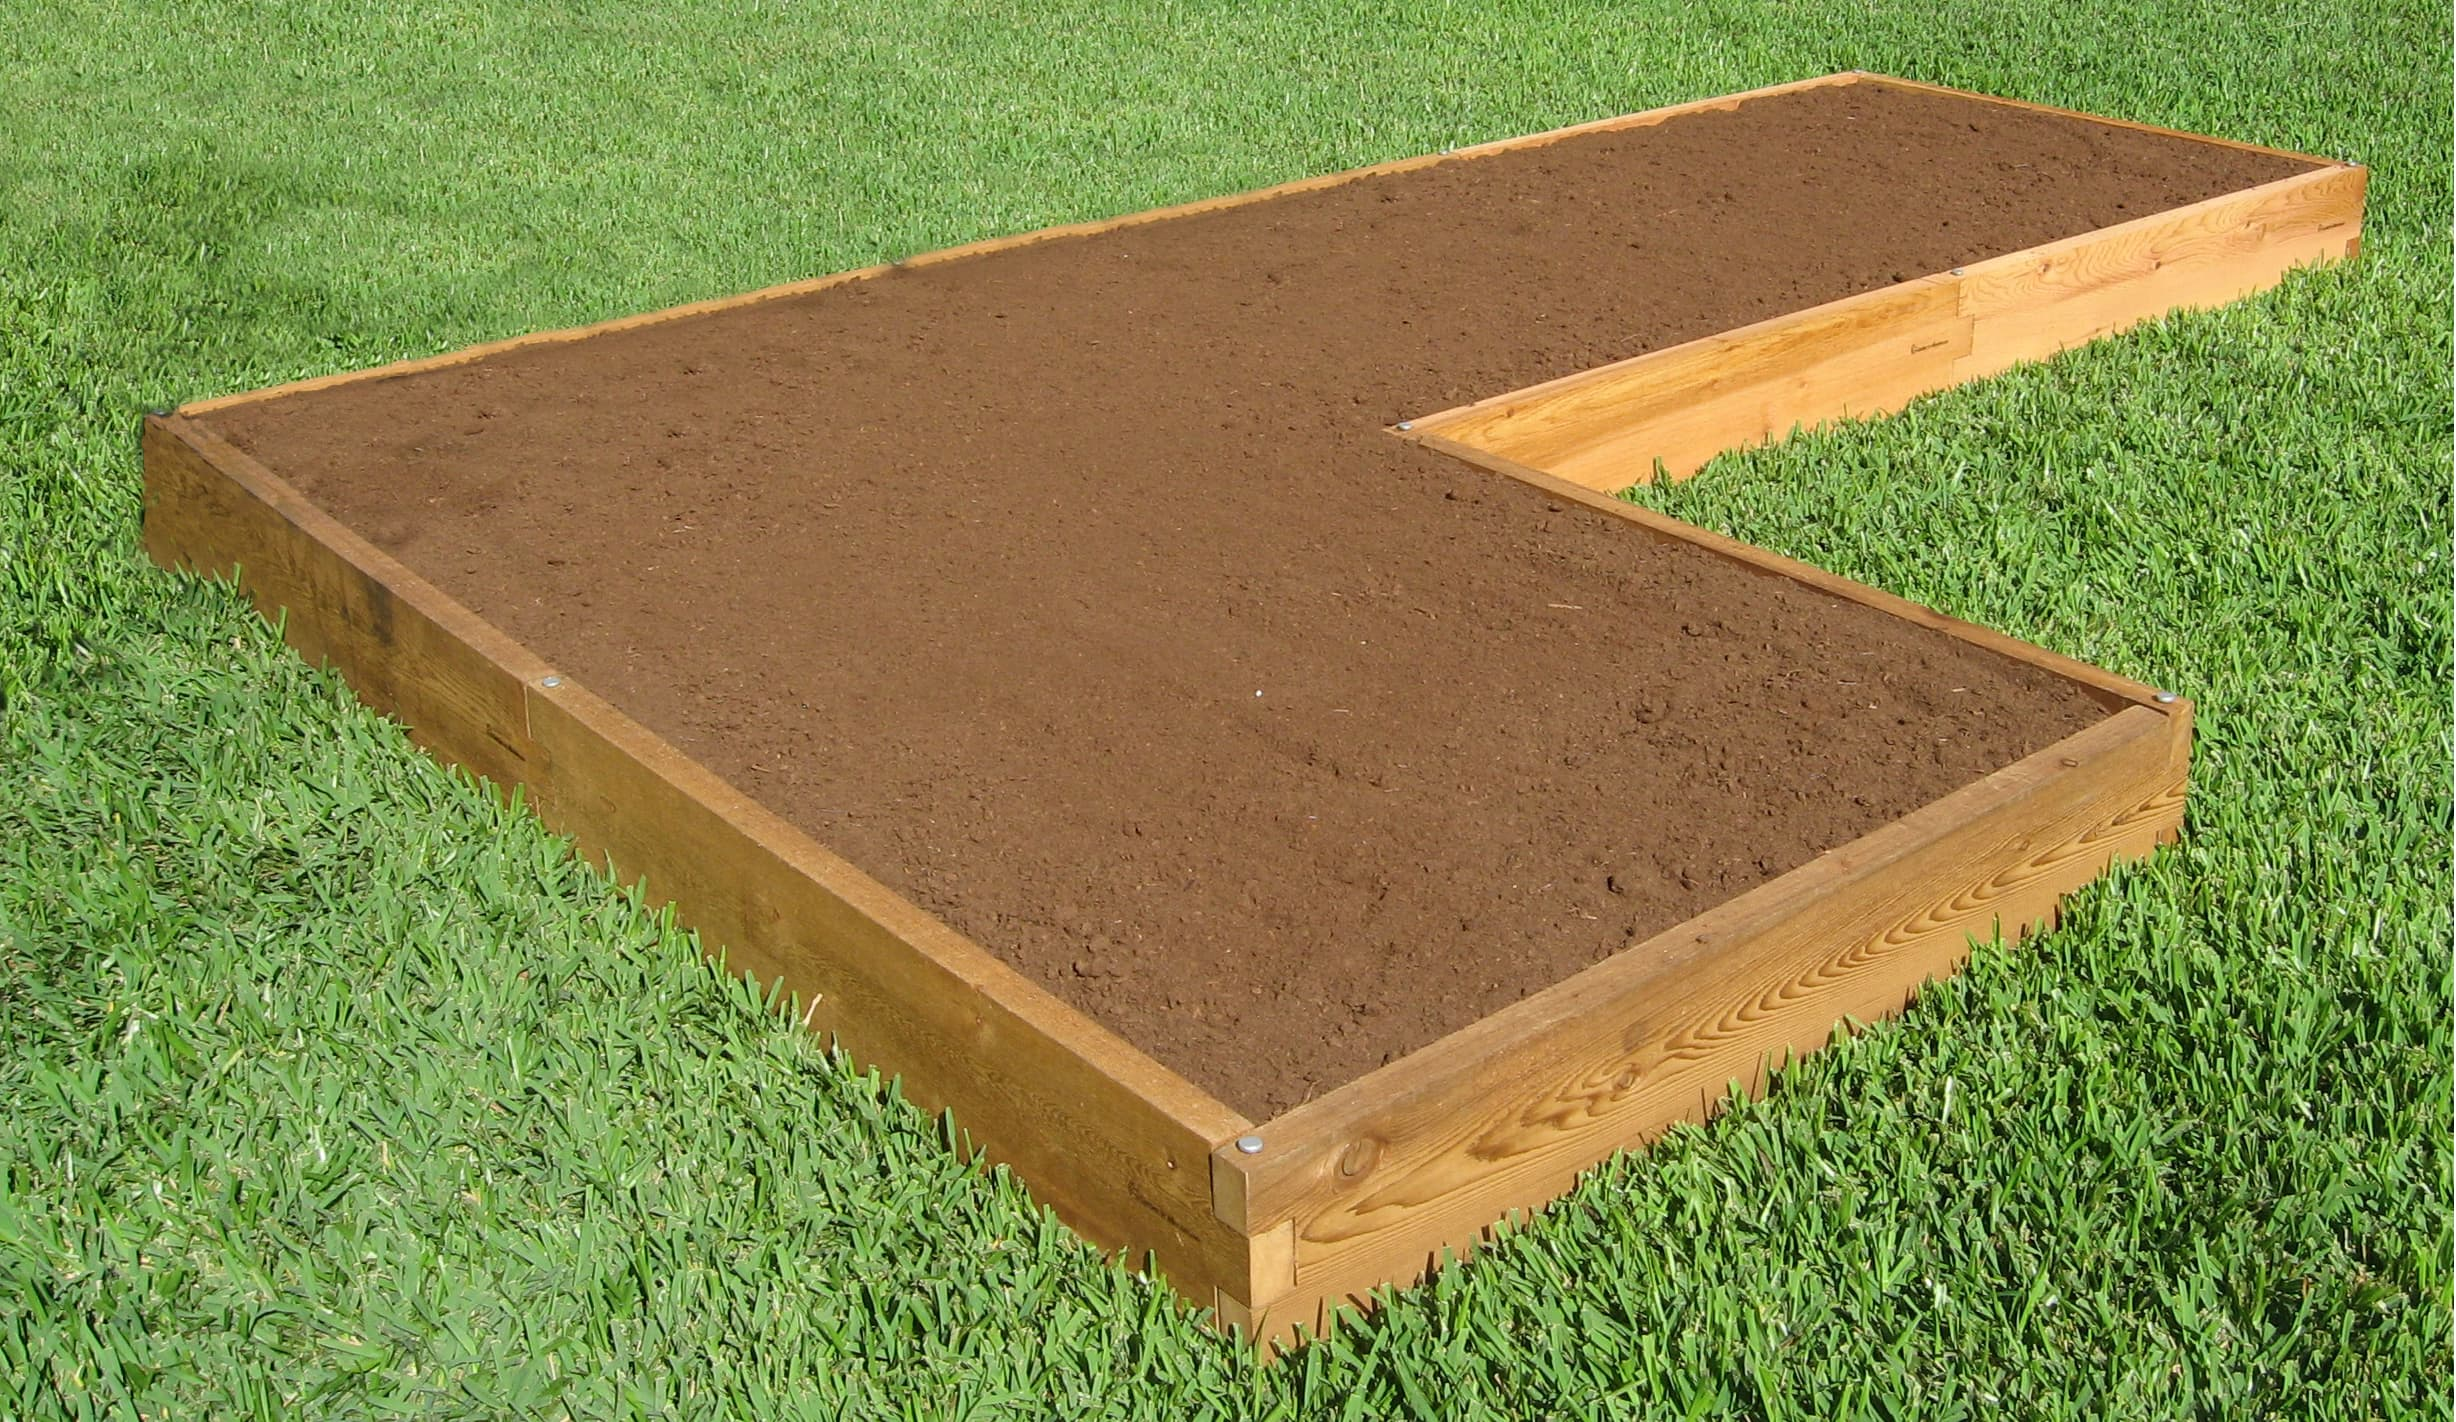 L shaped raised garden bed 4x16 raised garden bed Raised garden beds